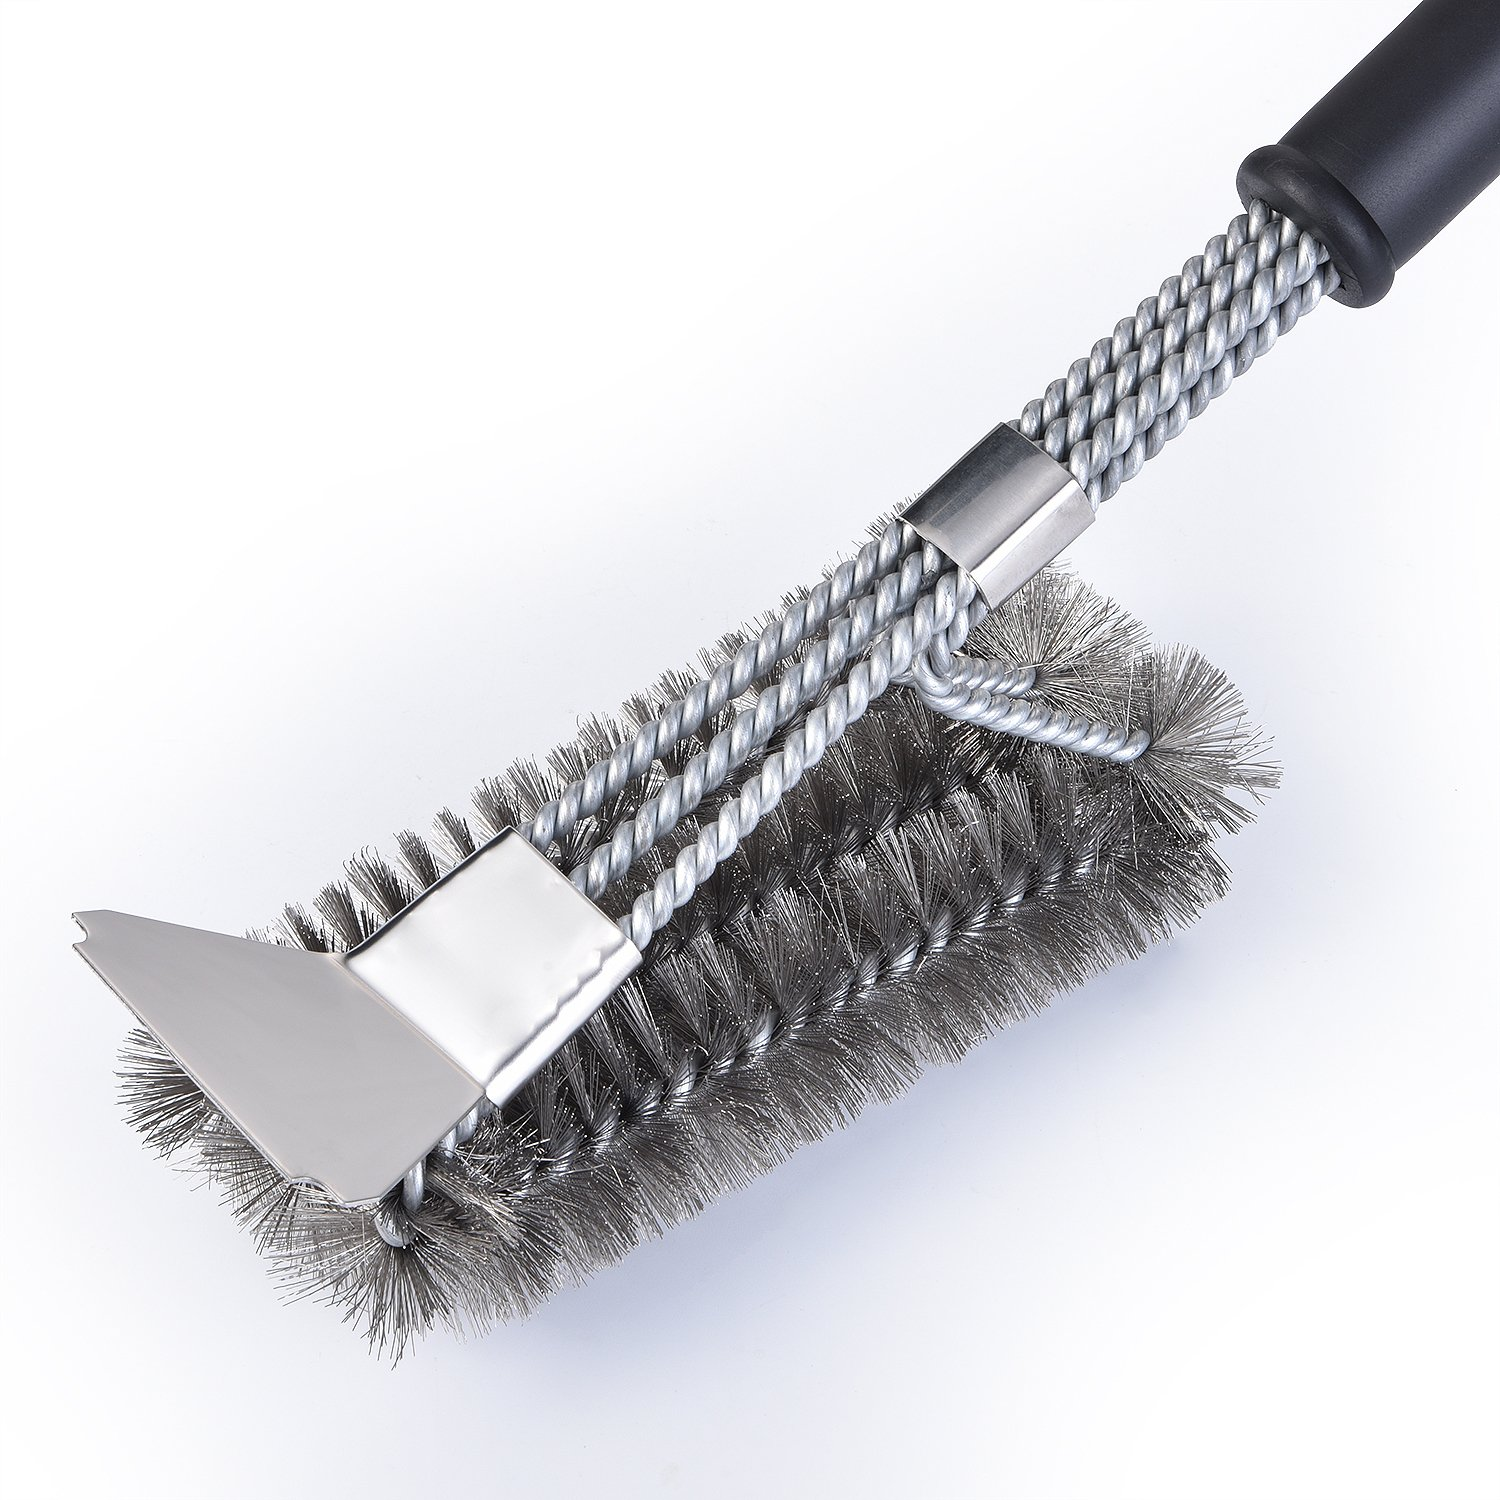 TBLUES Bristle Free Grill Brush, Grill Cleaner, BBQ Grill Brush and Scraper, Safe 18 Inches Stainless Steel Grill Cleaner Brush, BBQ Grill Accessories Tools and Gift